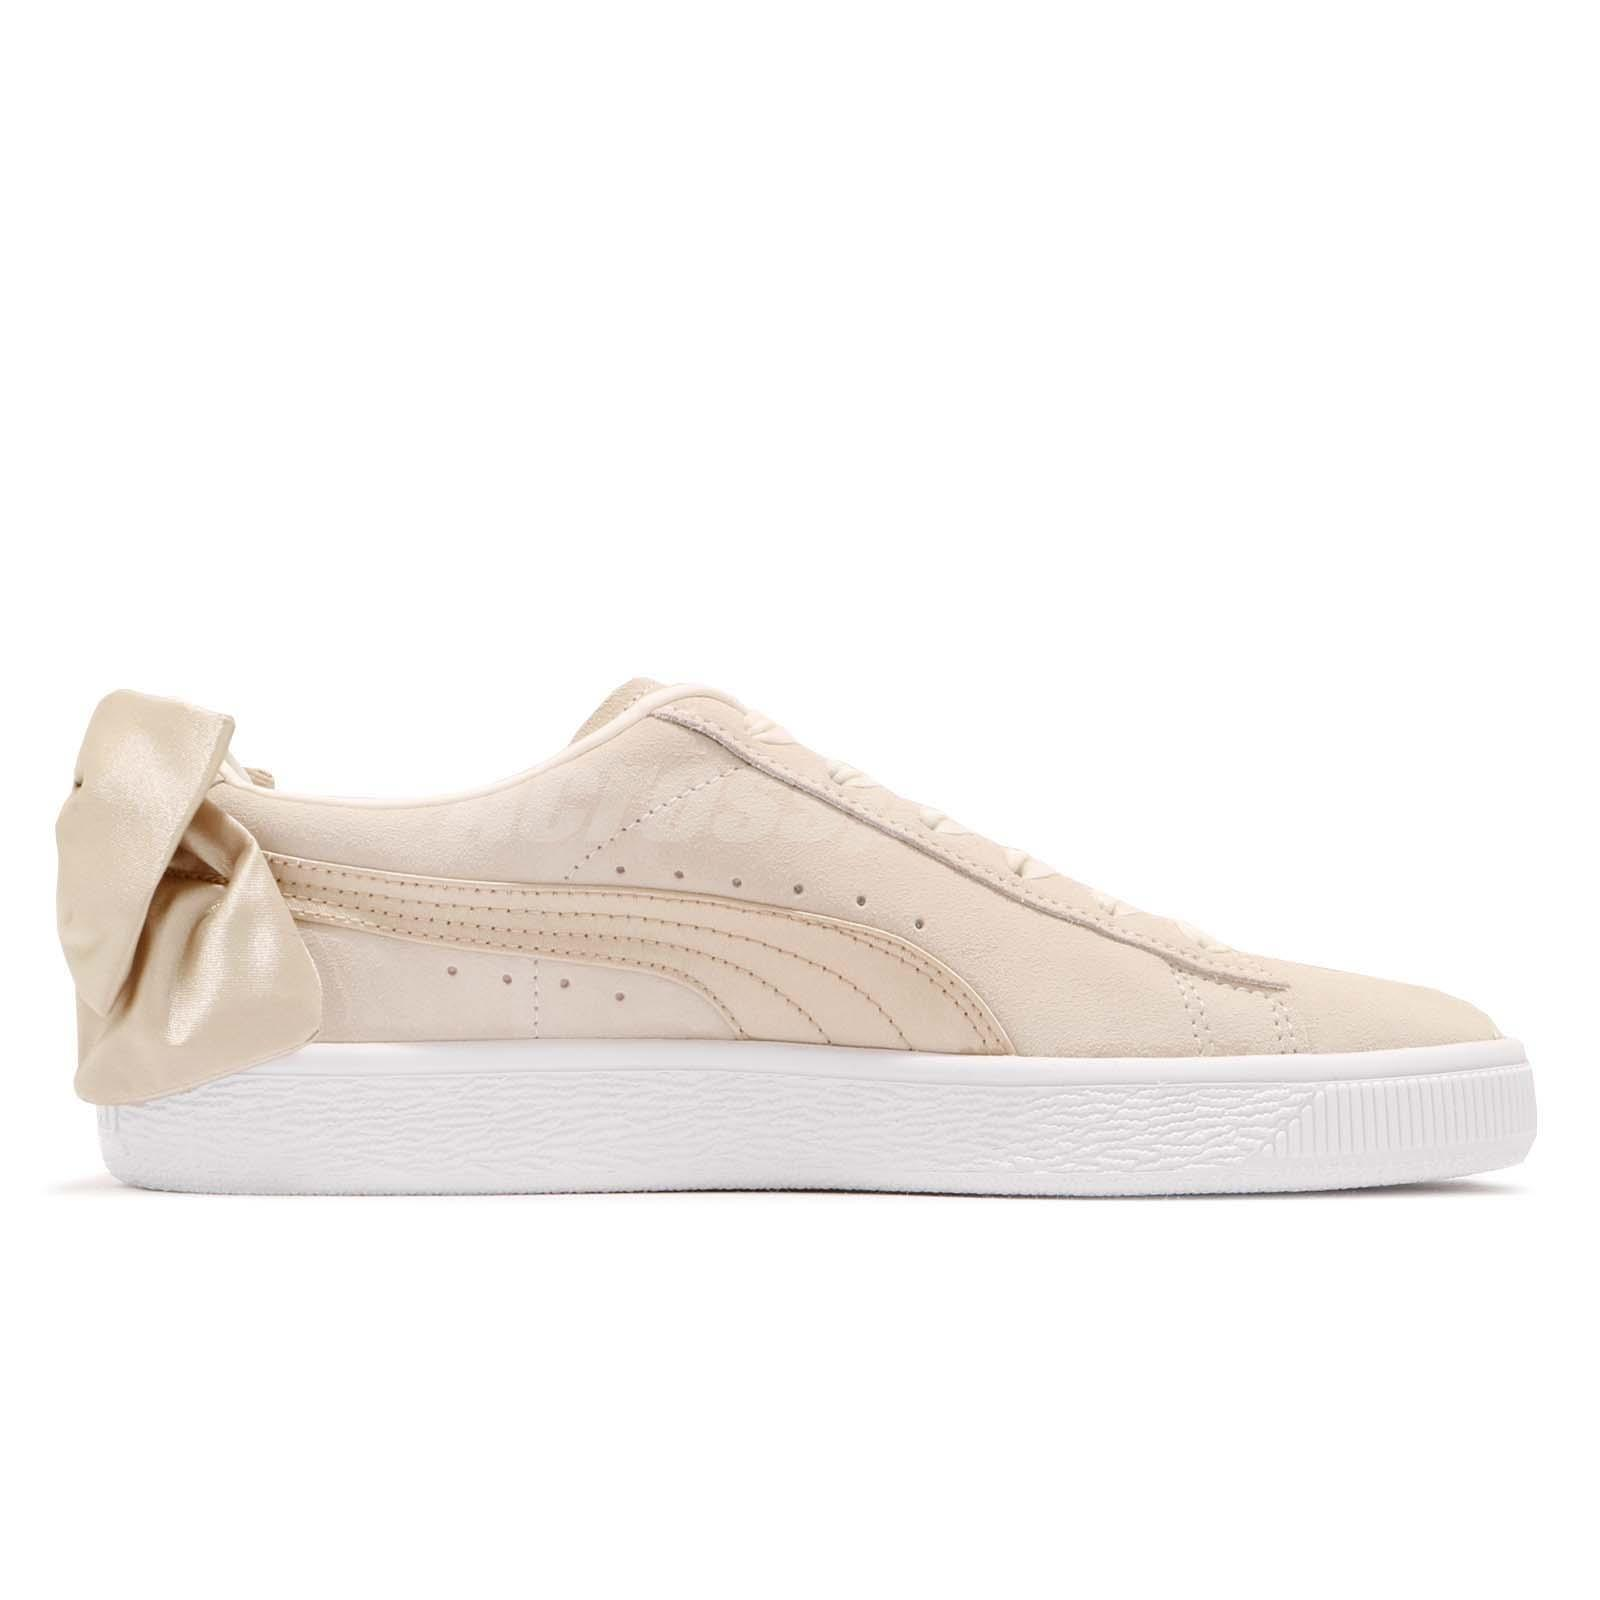 e2a46e5fbaa6 Details about Puma Suede Bow Varsity Wns Beige Gold Womens Casual Shoes  Sneakers 367732-03